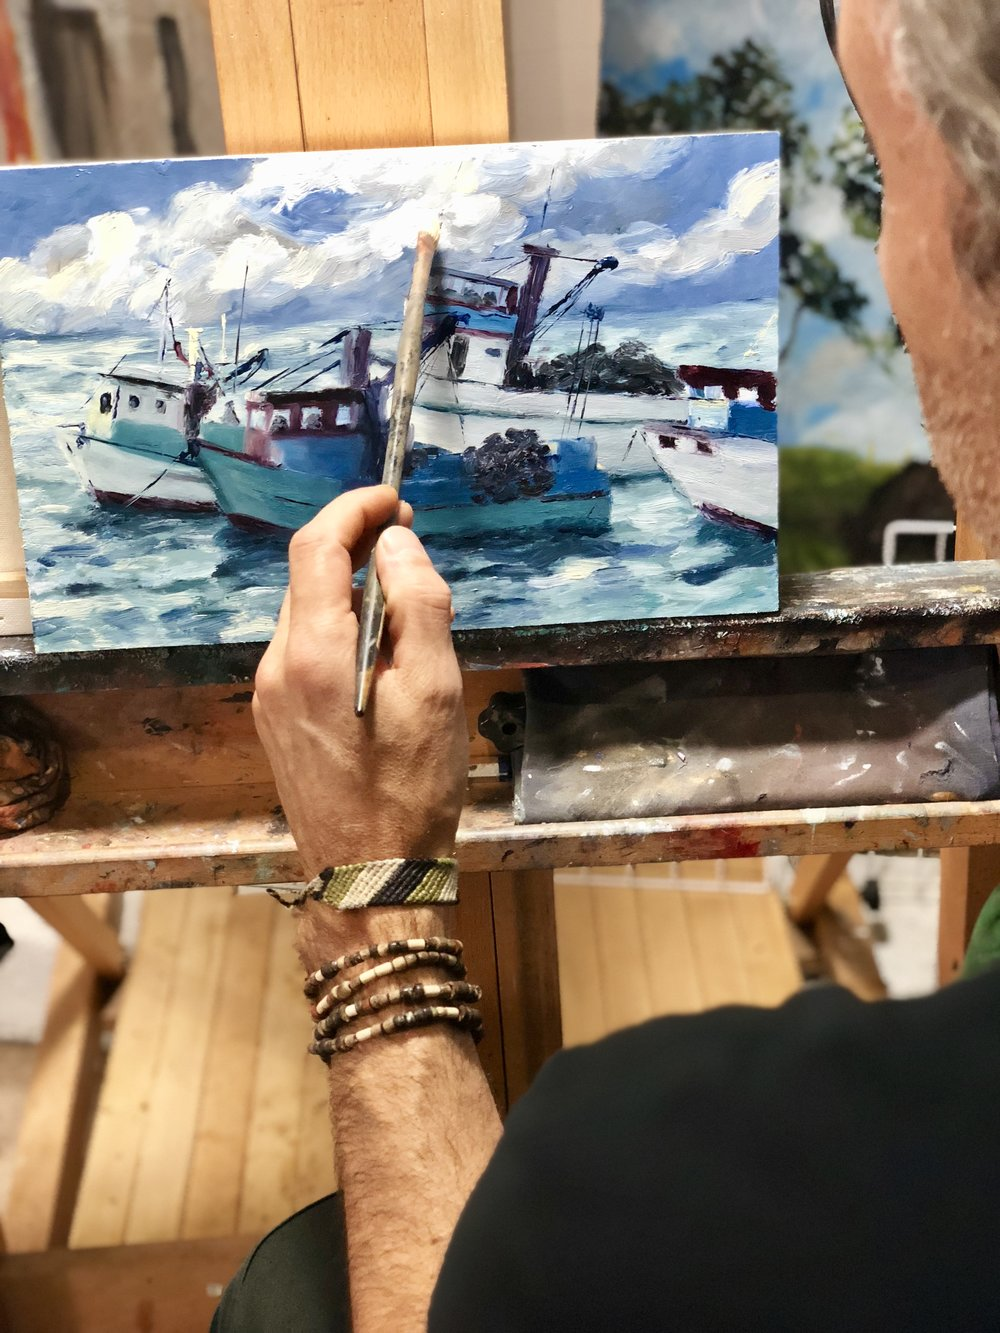 """Here working on """"Bolicheras de Puerto Lopez',  inspired in Puerto Lopez, a small fishing village in Ecuador. This painting will be displayed at the Open Studios Exhibition through the middle of November."""